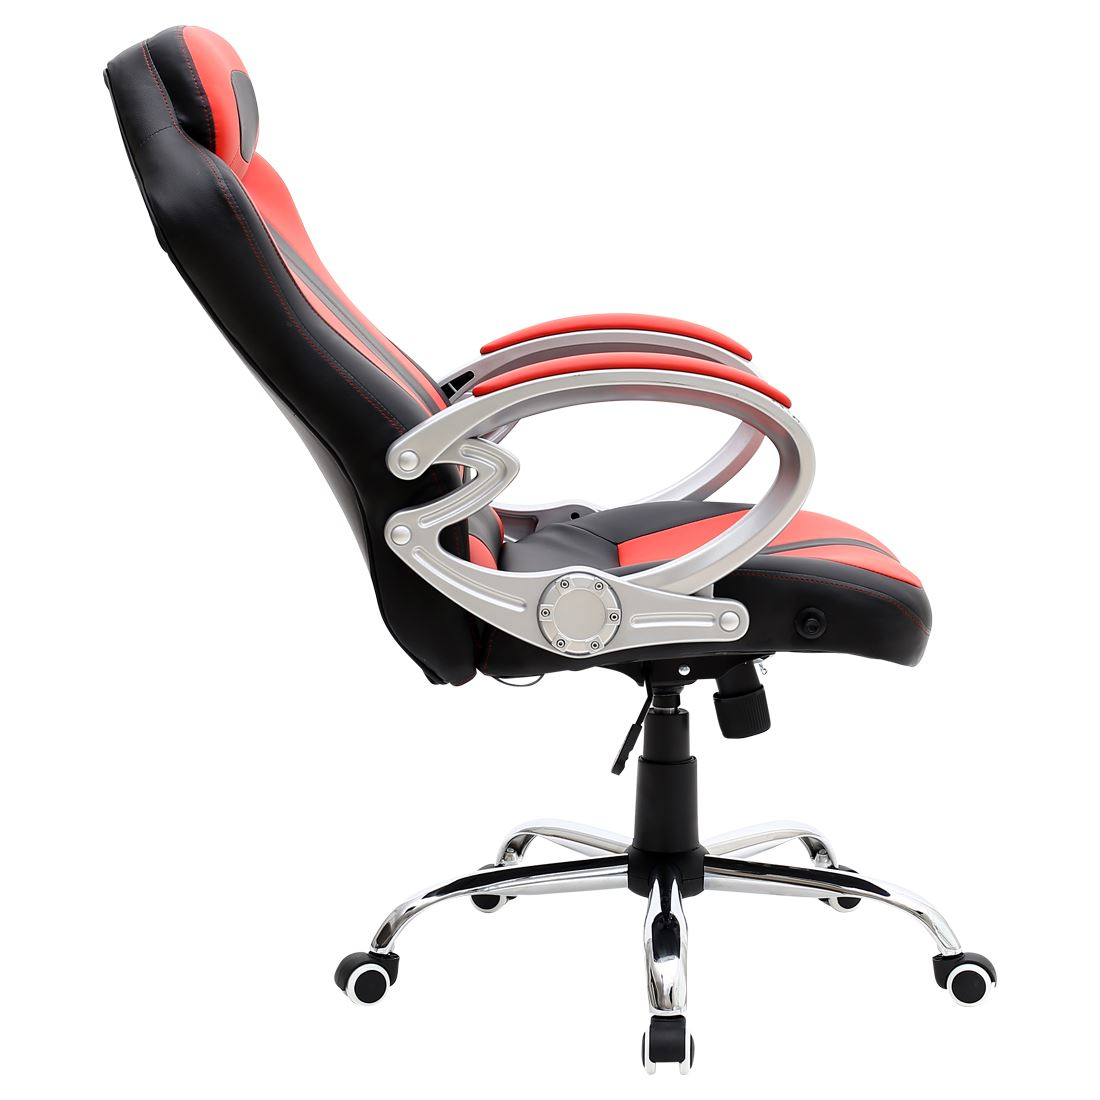 swivel chair for car rentals houston monaco black red gaming sports seat home office